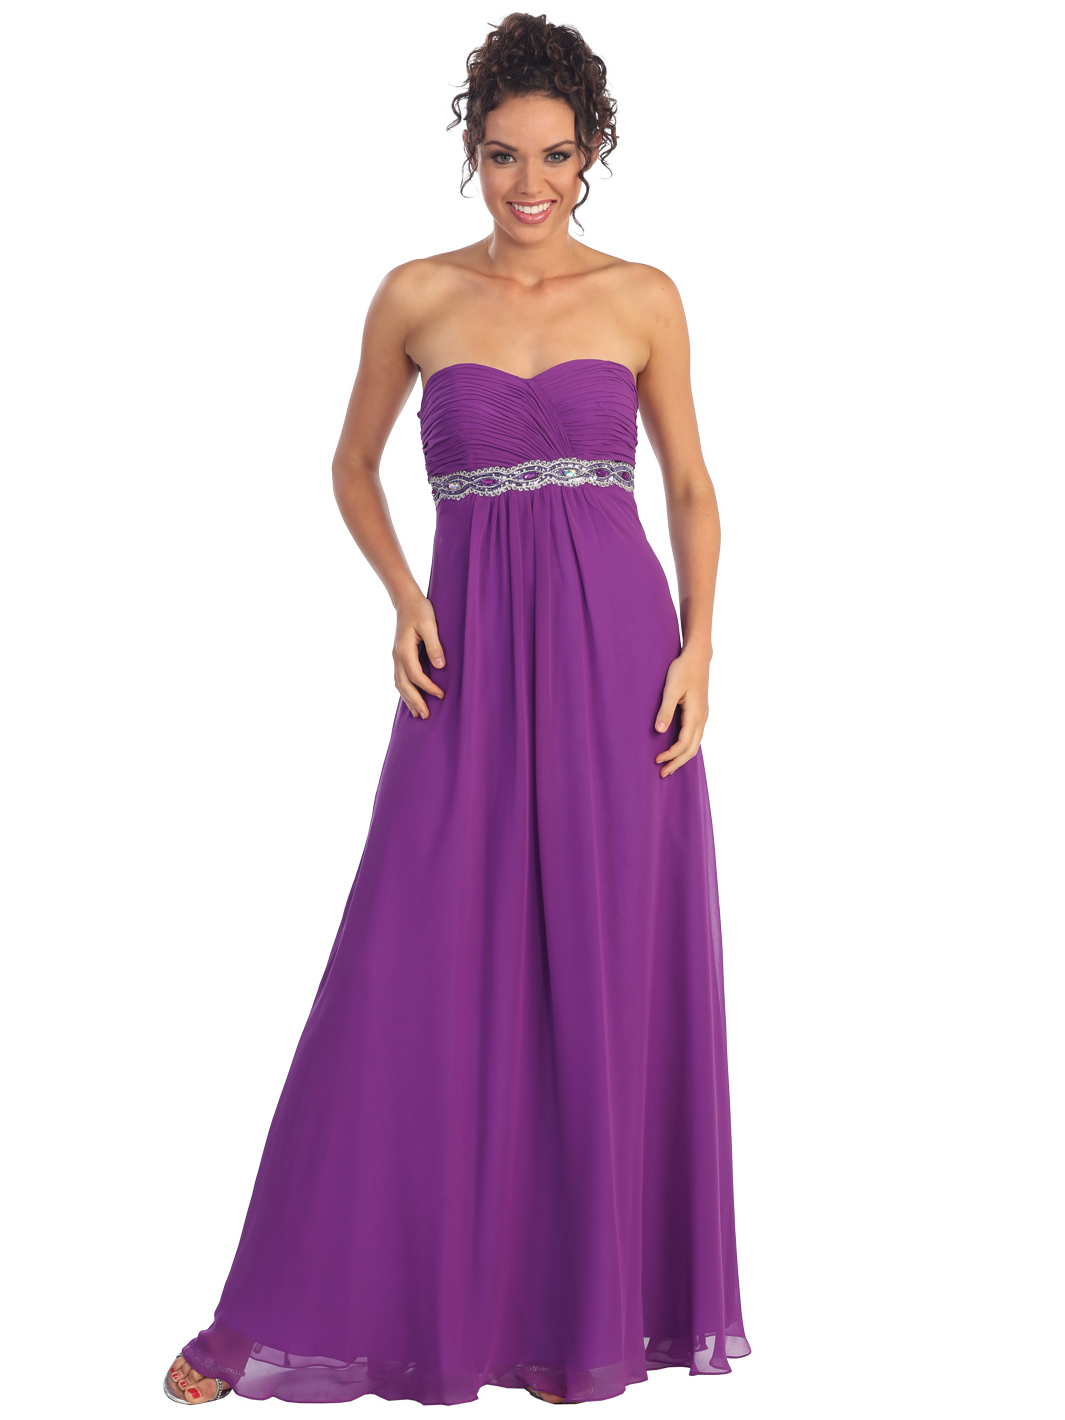 1dac4192b08 Chiffon Empire Waist Evening Dress